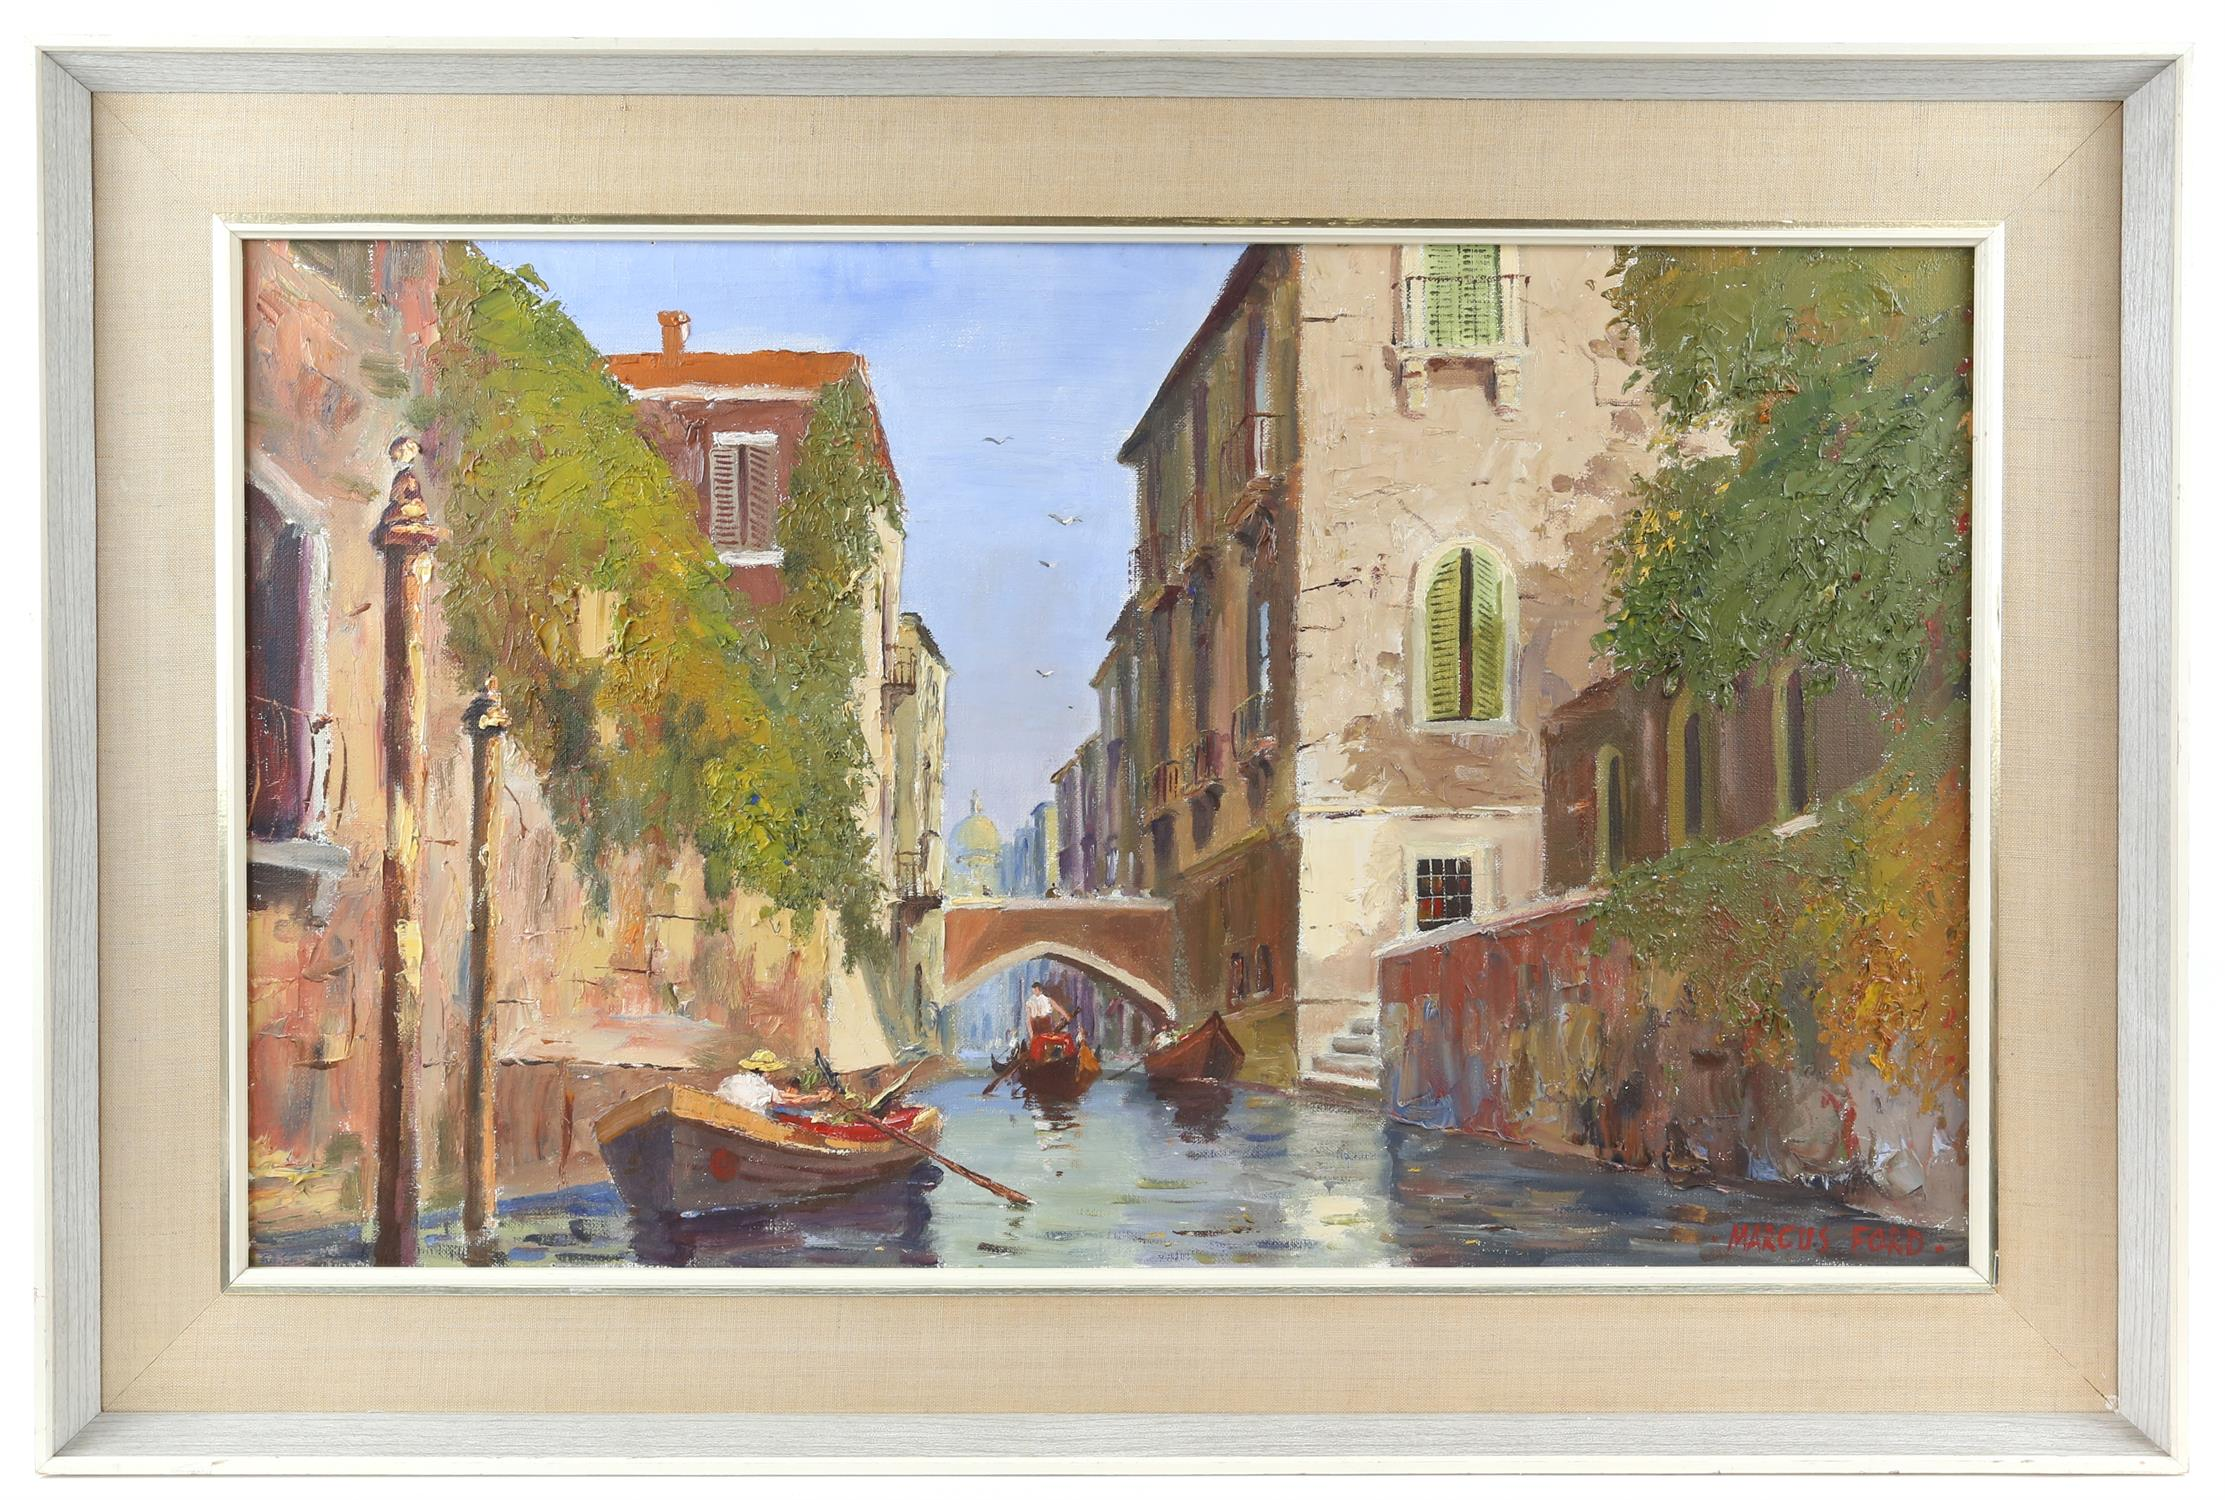 Marcus Ford (British 1914-1989), Venice canal scene, signed, oil on canvas, 44.5 x 74.5cm, - Image 2 of 4